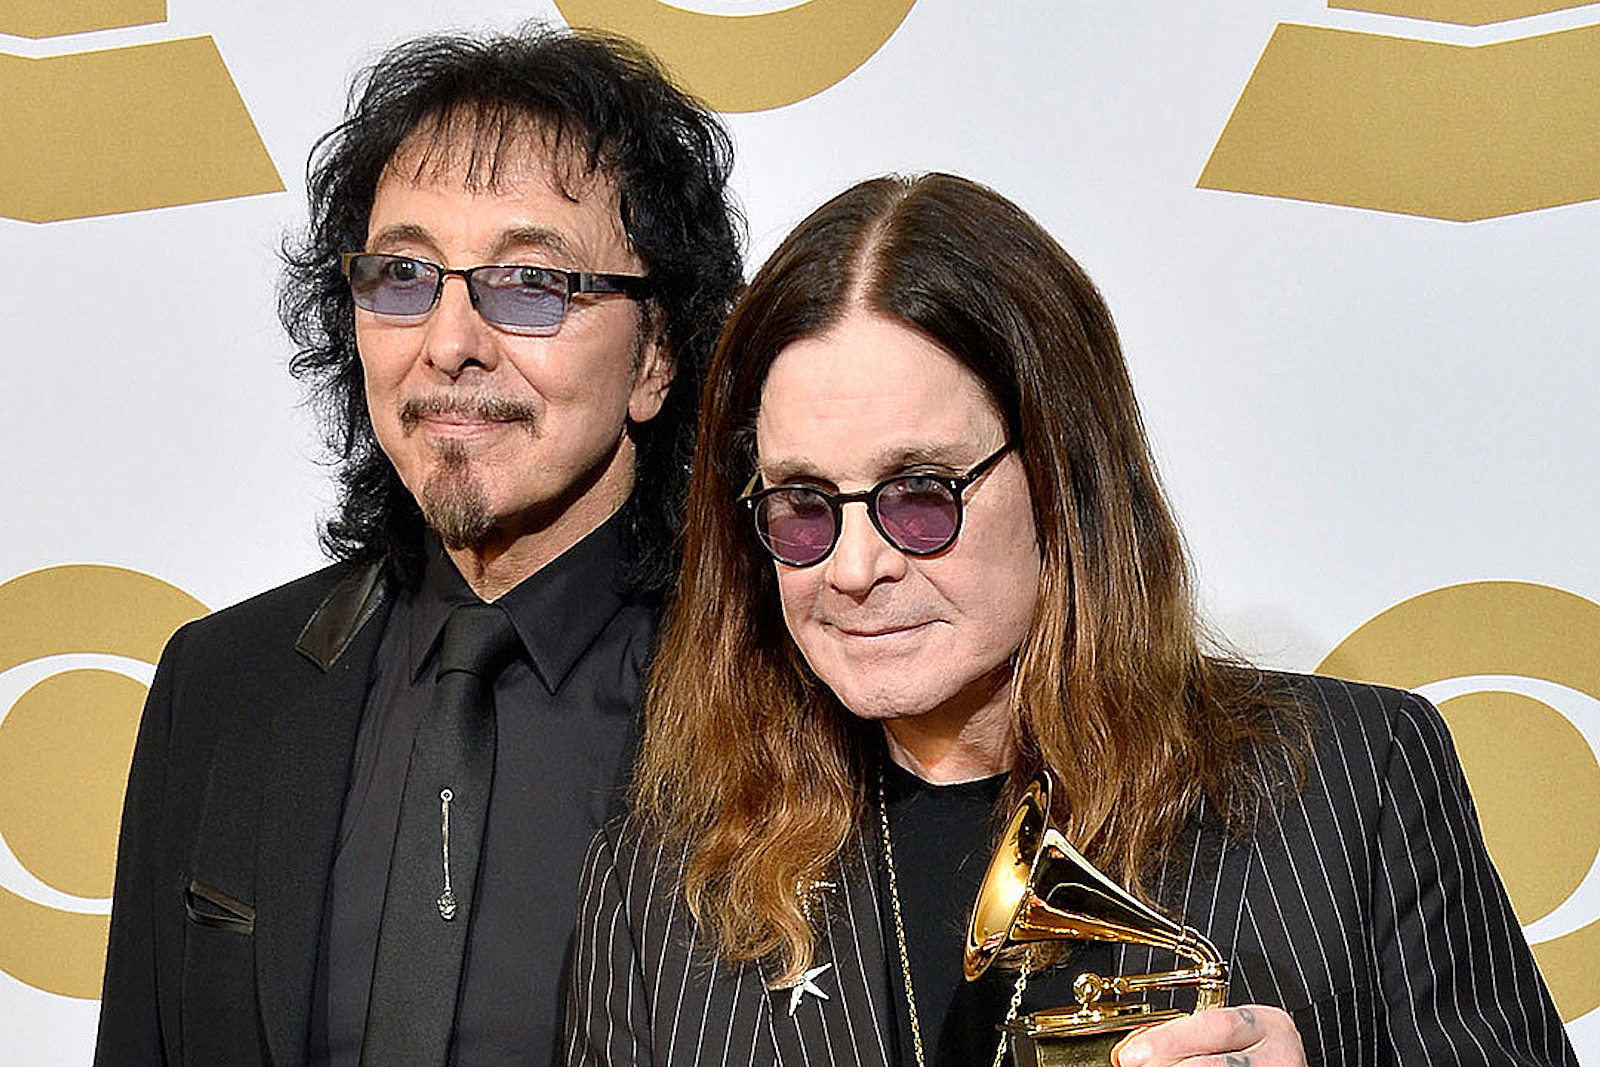 Ozzy Osbourne Enlists Tony Iommi and Eric Clapton for Upcoming LP